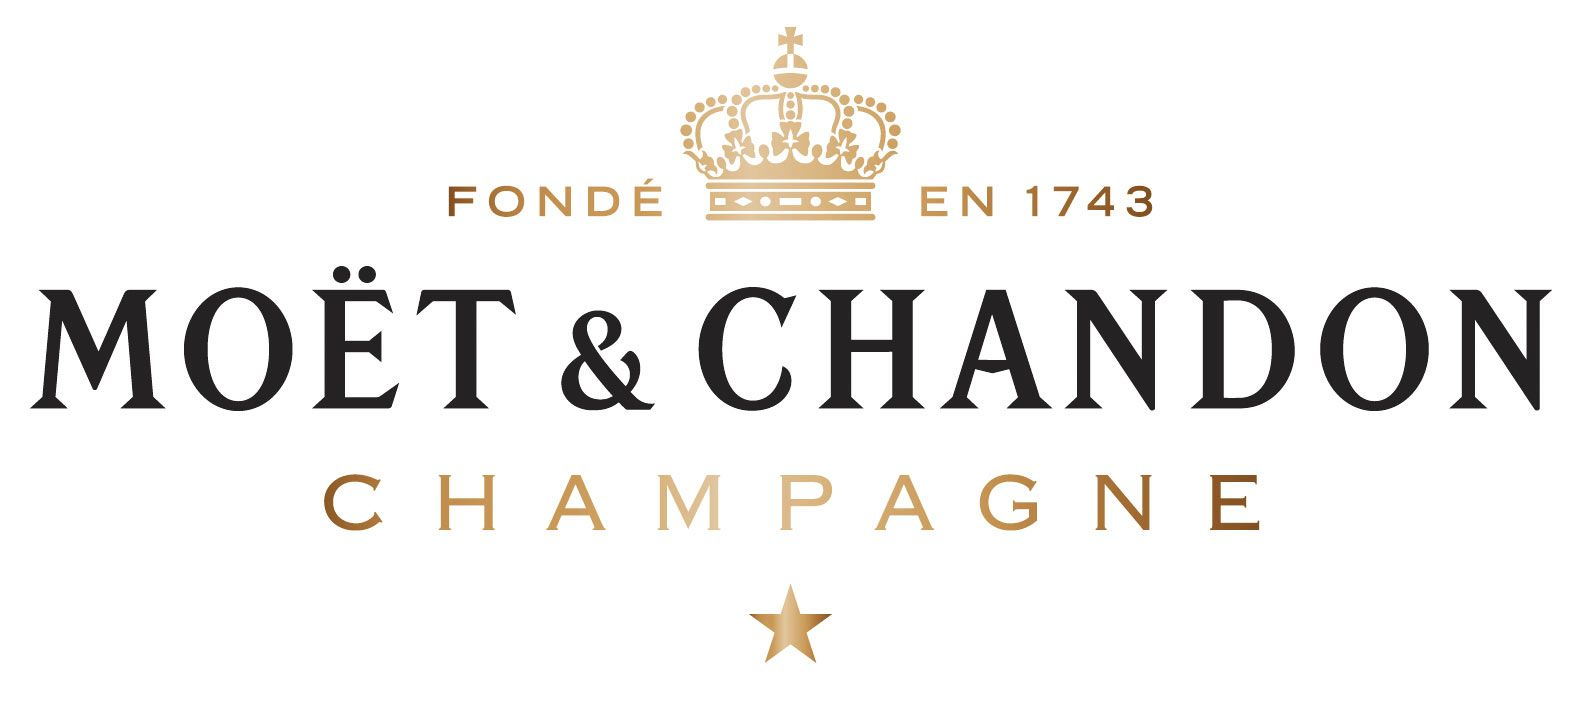 https://missglobal.com/wp-content/uploads/2018/05/Moet-and-Chandon.jpg